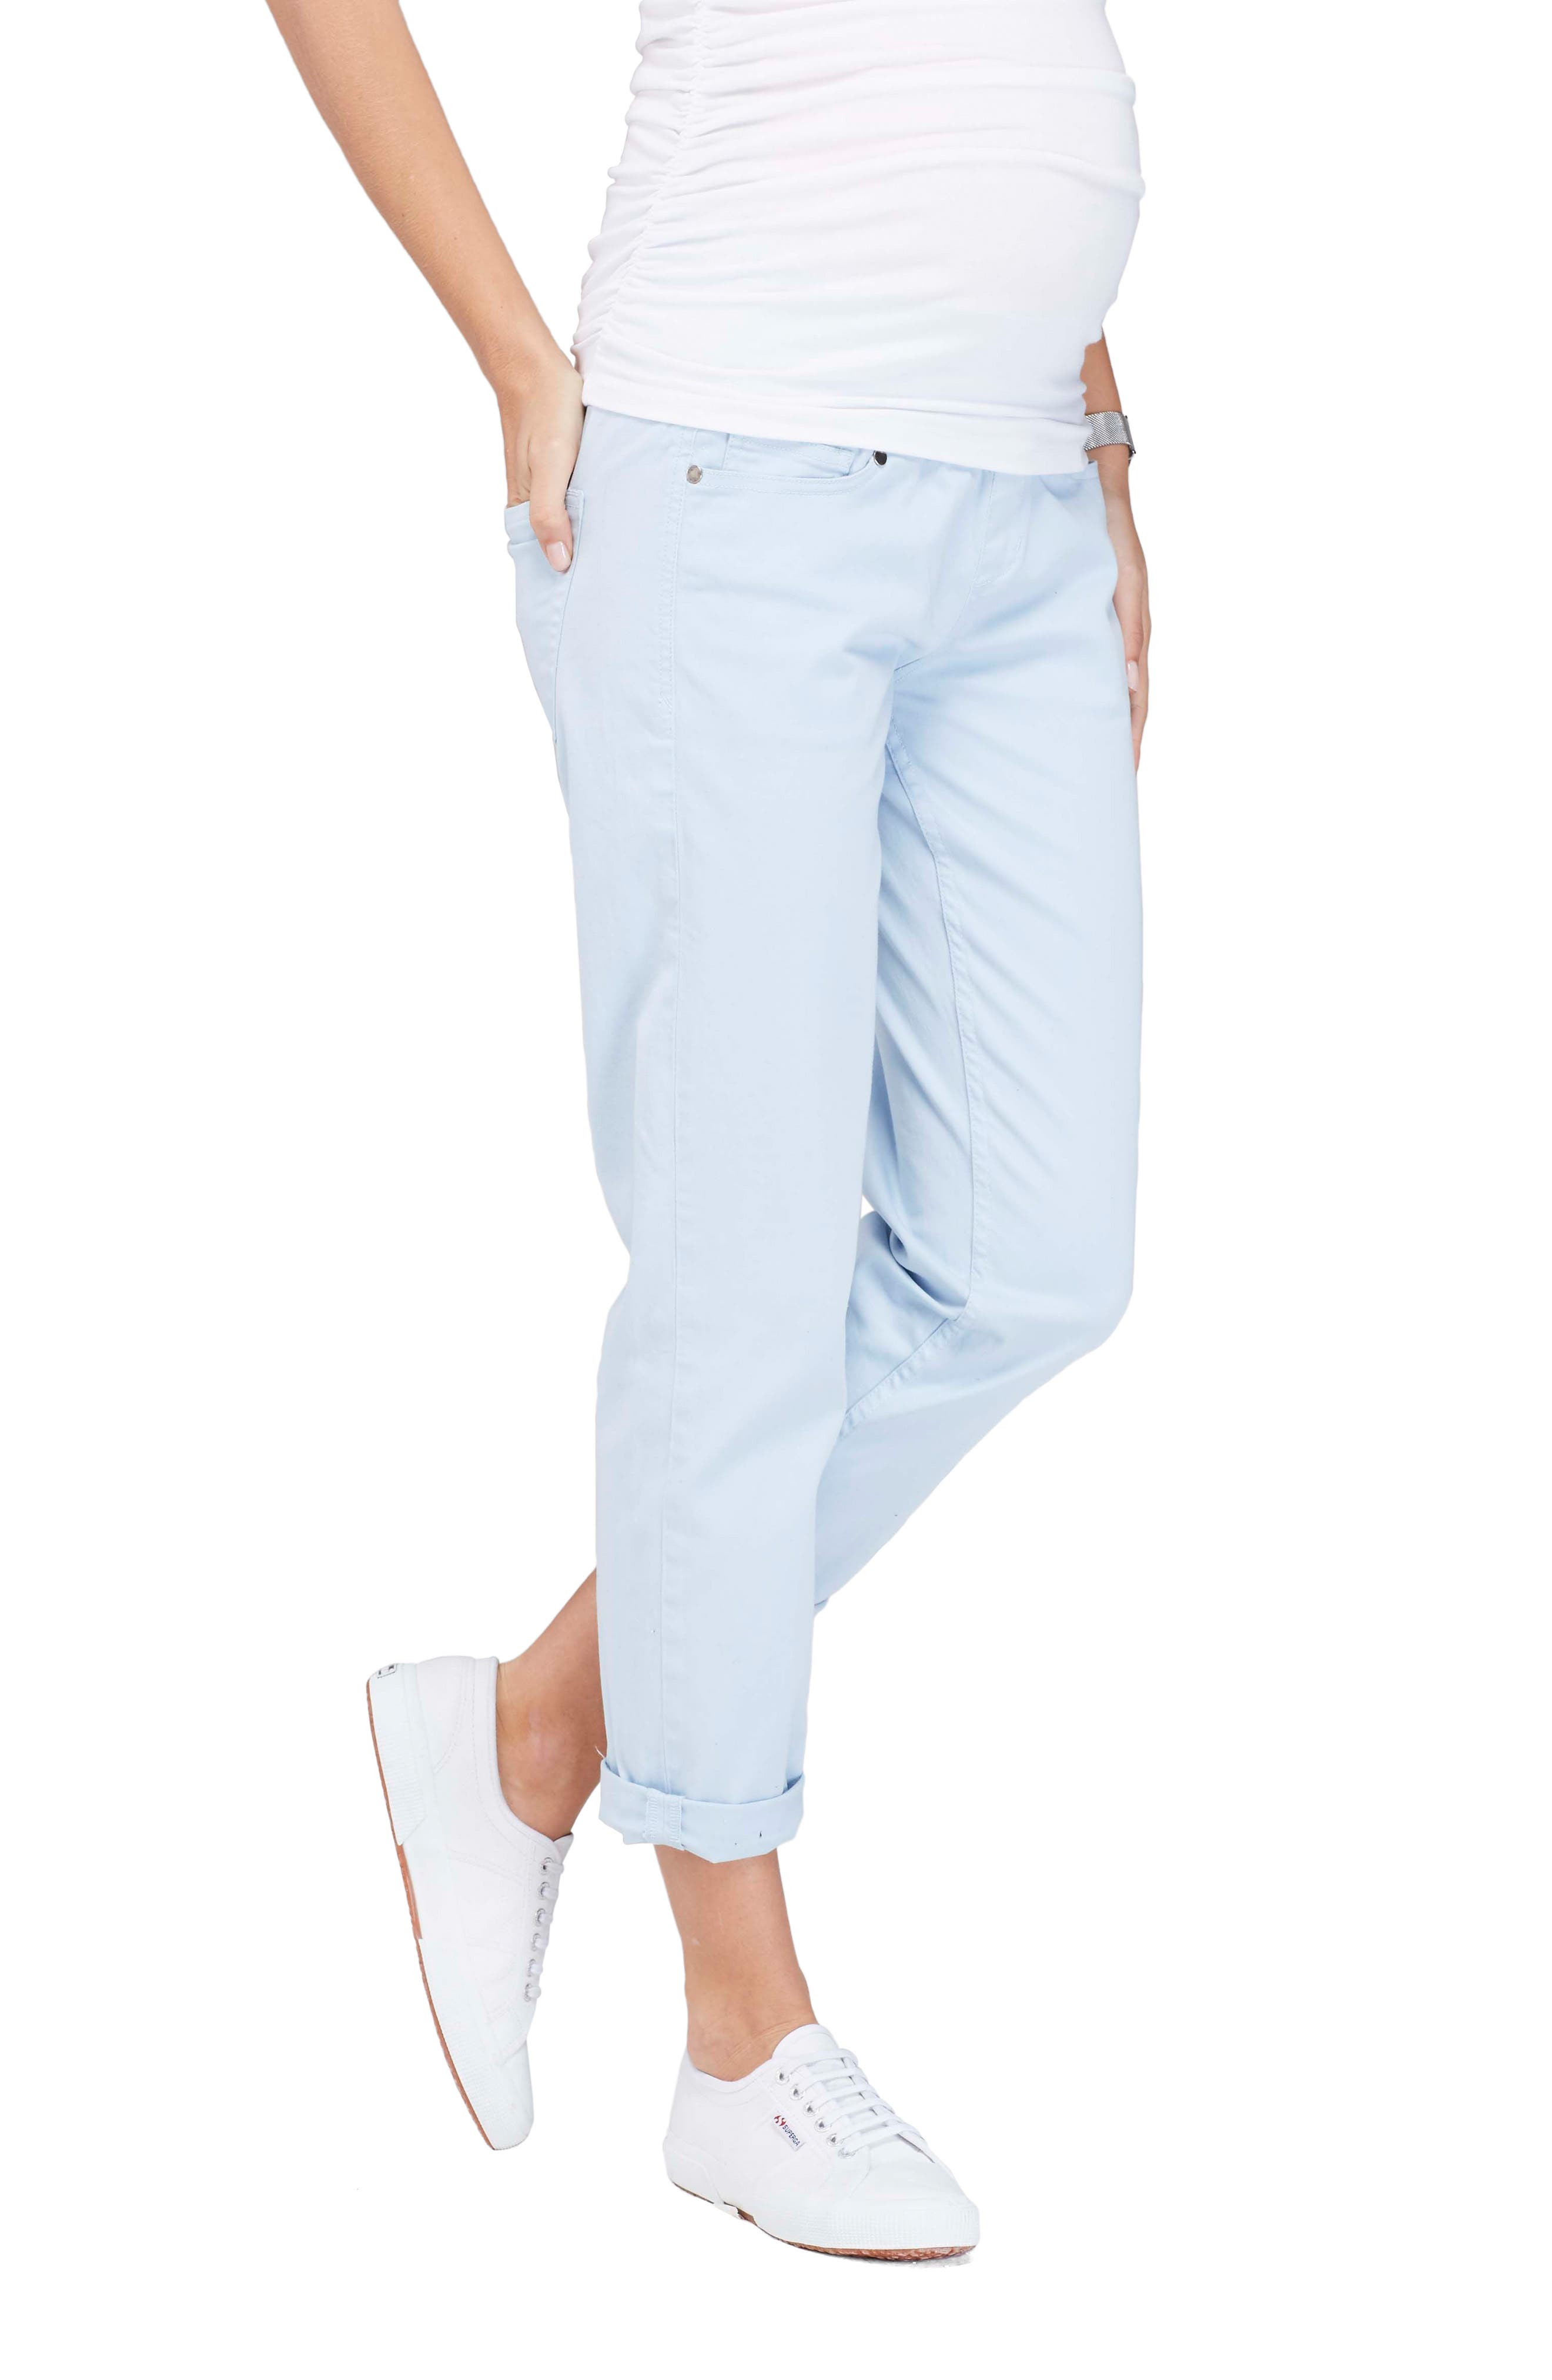 Isabella Oliver Relaxed Boyfriend Maternity Jeans